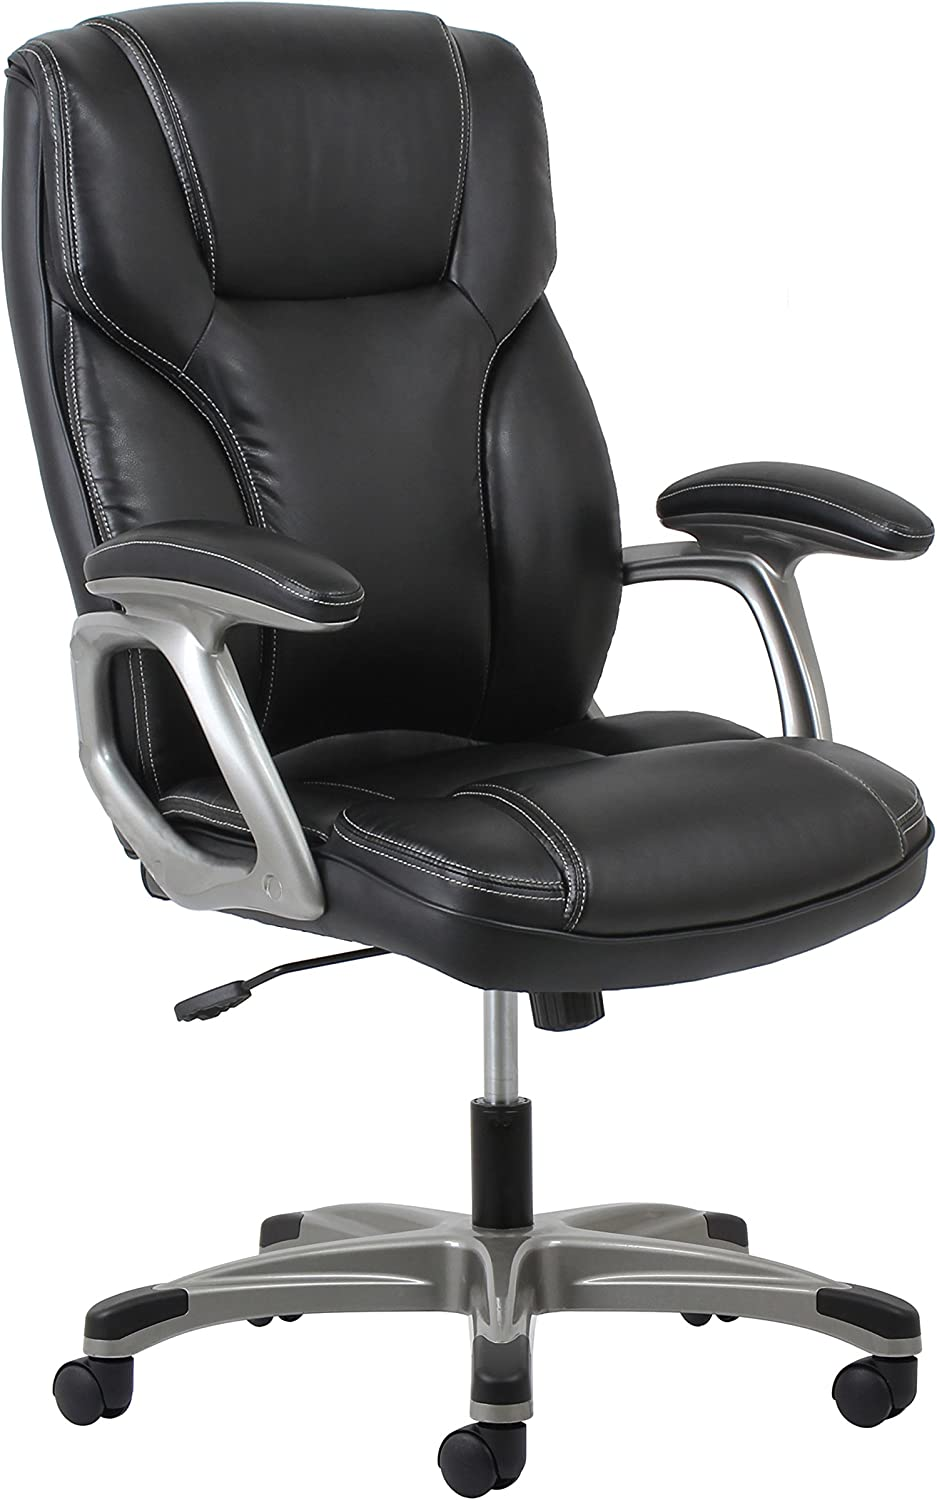 Essentials High-Back Leather Executive Office Computer Chair with Arms - Ergonomic Swivel Chair (ESS-6030-BLK)